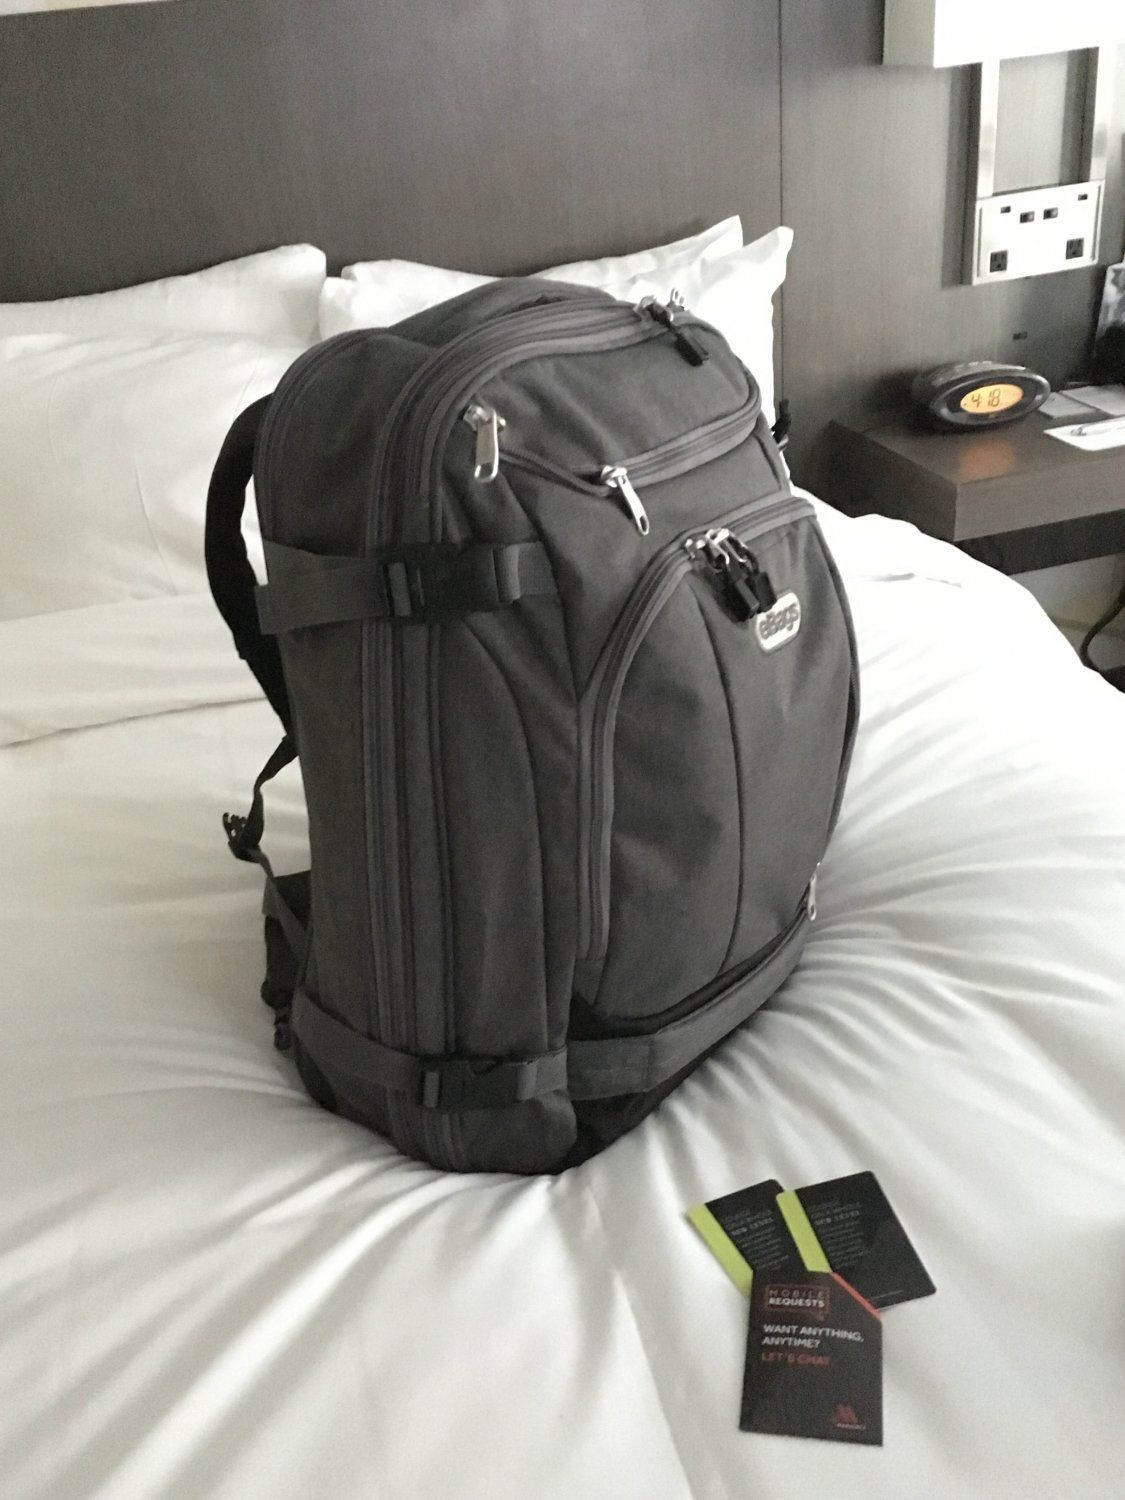 64c27f4f49 eBags TLS Mother Lode Weekender Convertible Jr Heathered Graphite grey -  used once